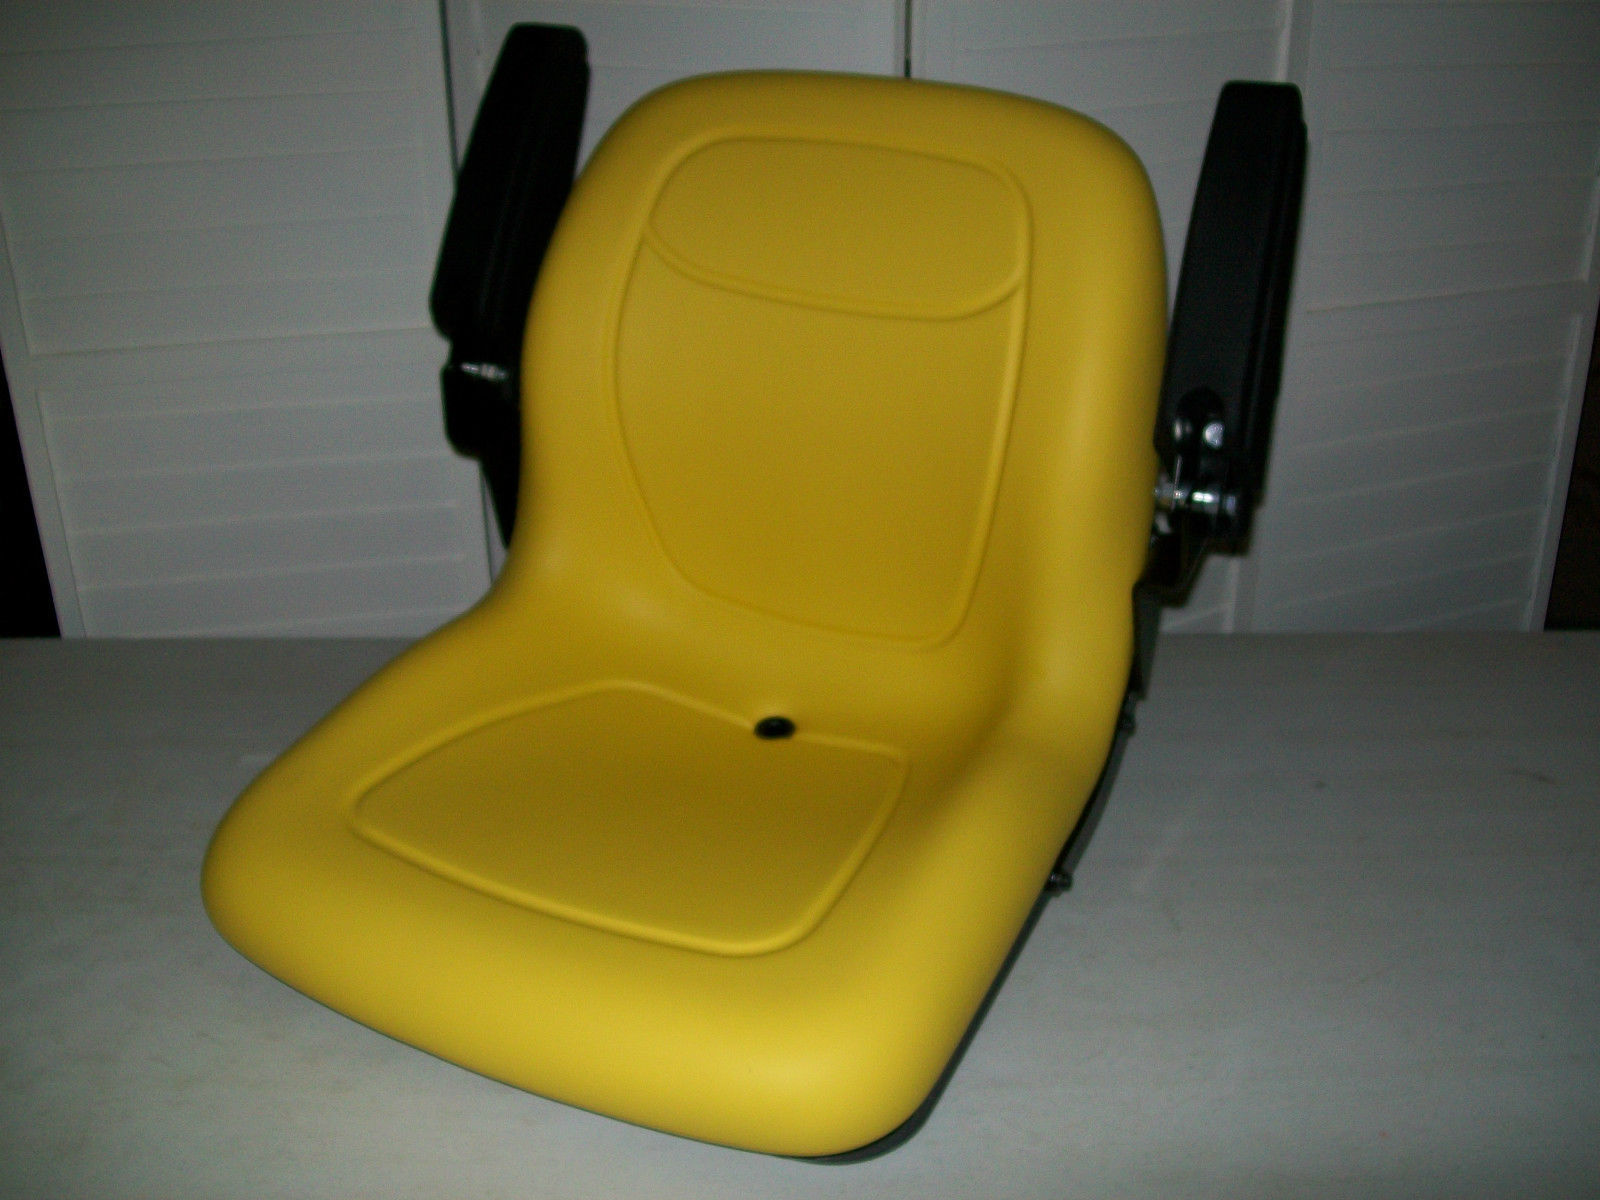 Compact Tractor Seats : Yellow seat w flip up arm rests fit john deere compact